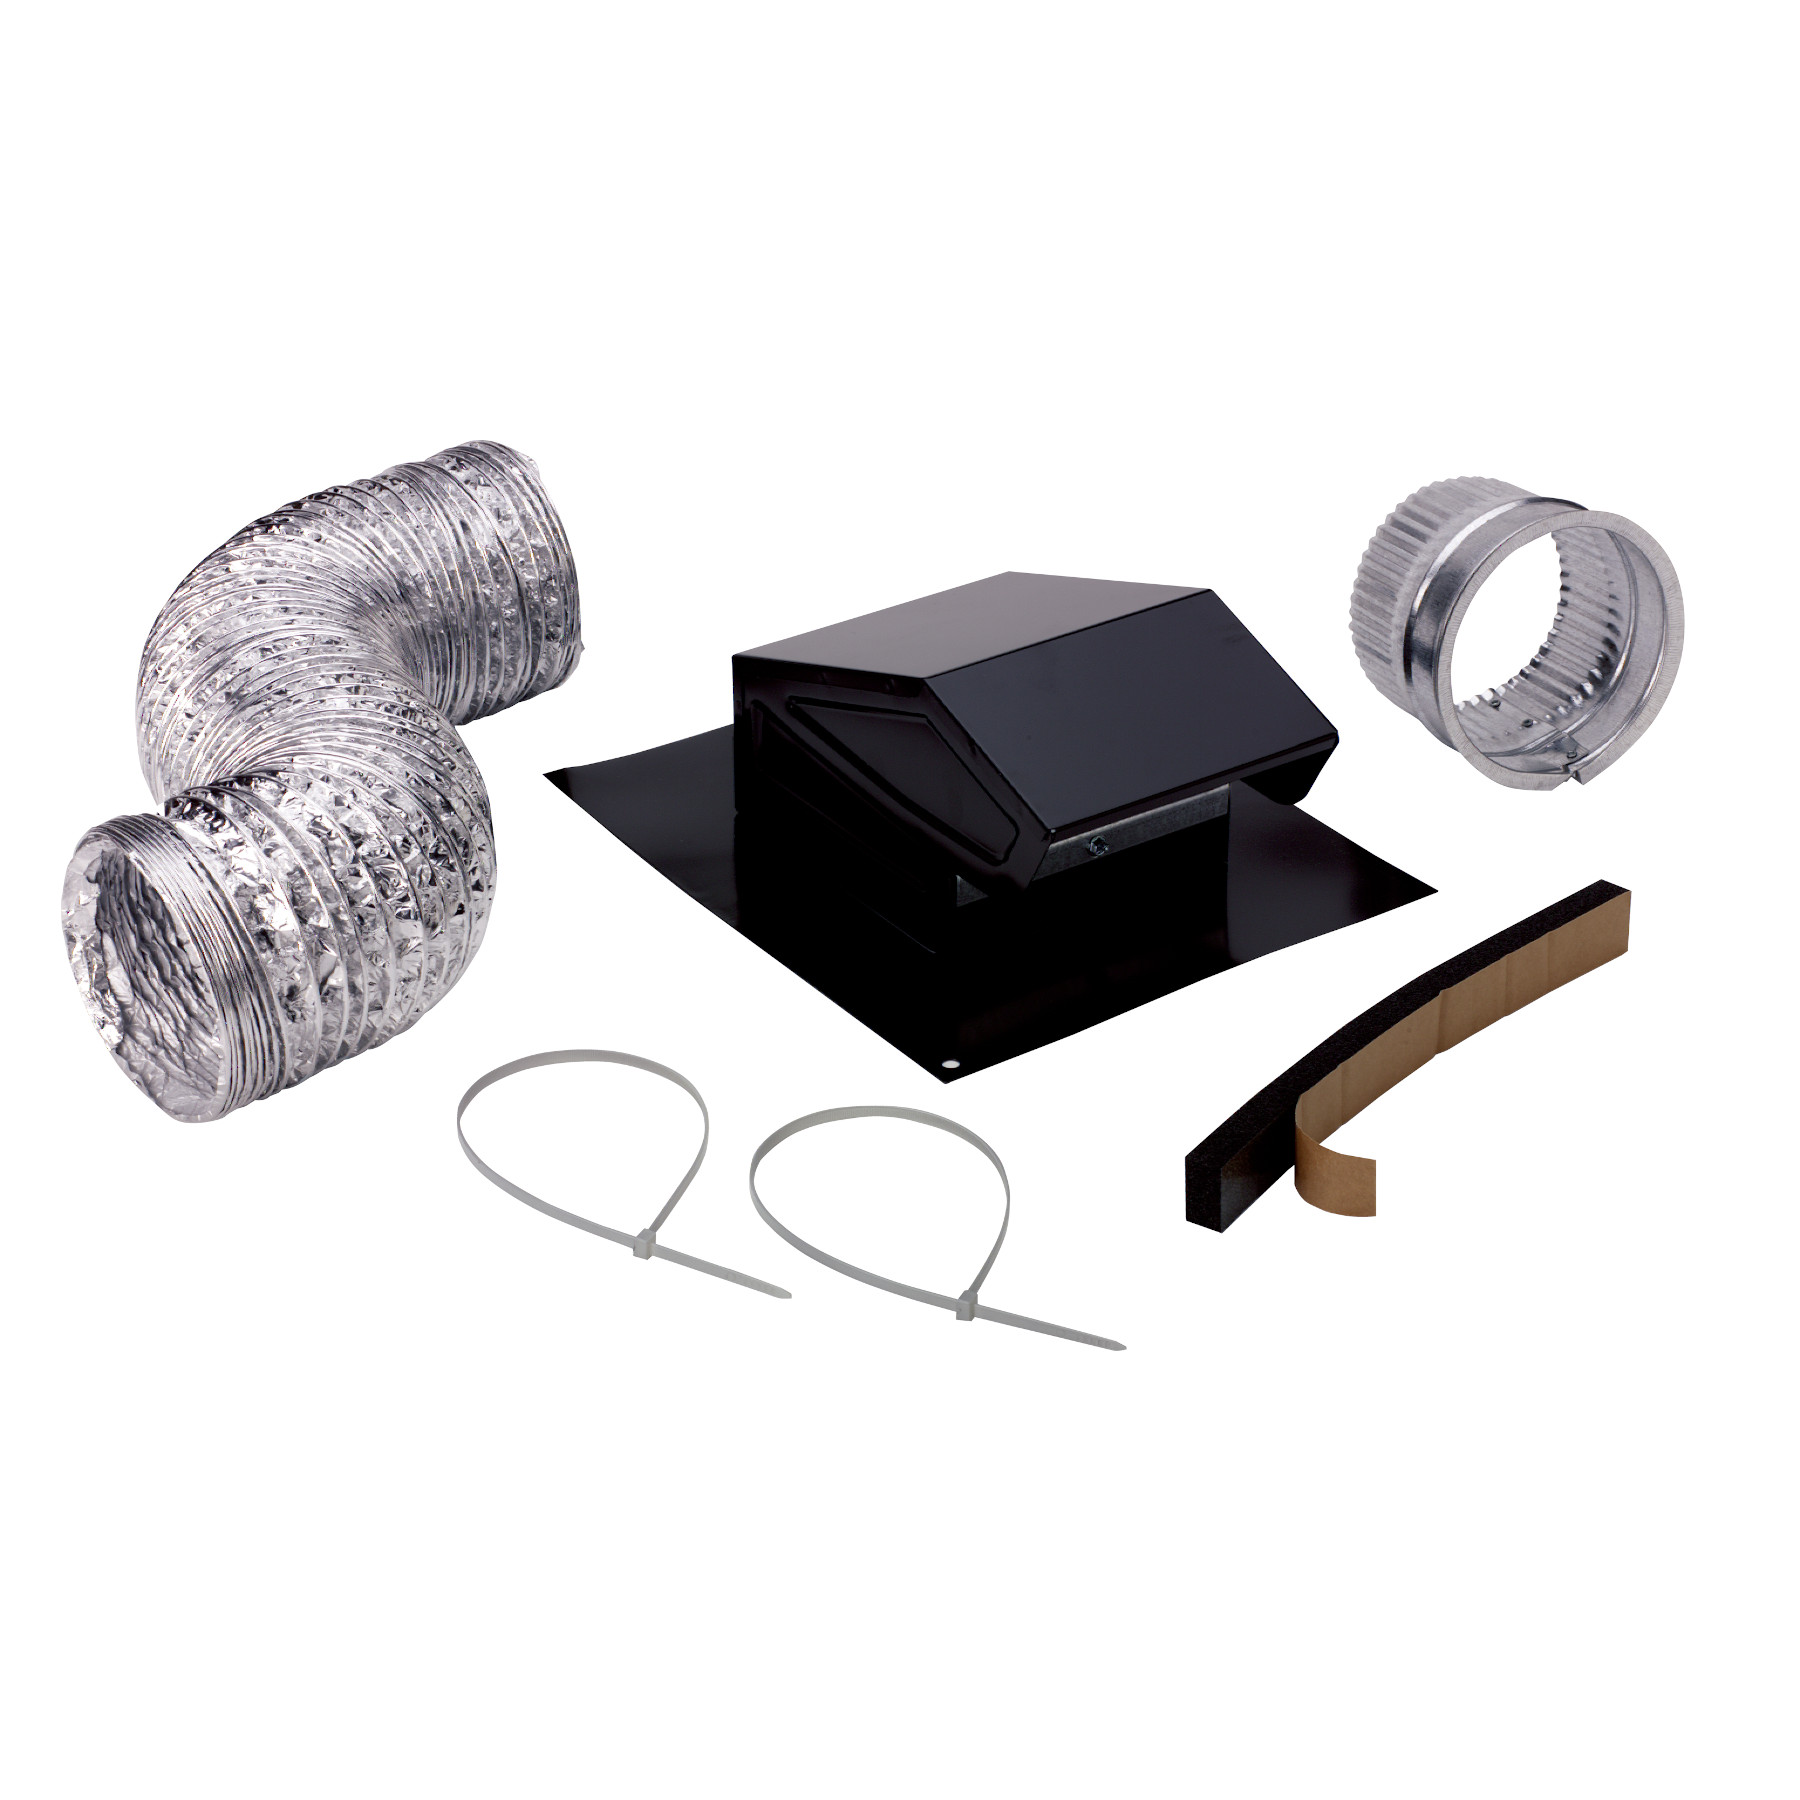 "Broan-NuTone® Steel Roof Vent Kit for 3"" or 4"" Round Duct, Includes Flexible Ducting, 4"" to 3"" Reducer, Duct Connector"